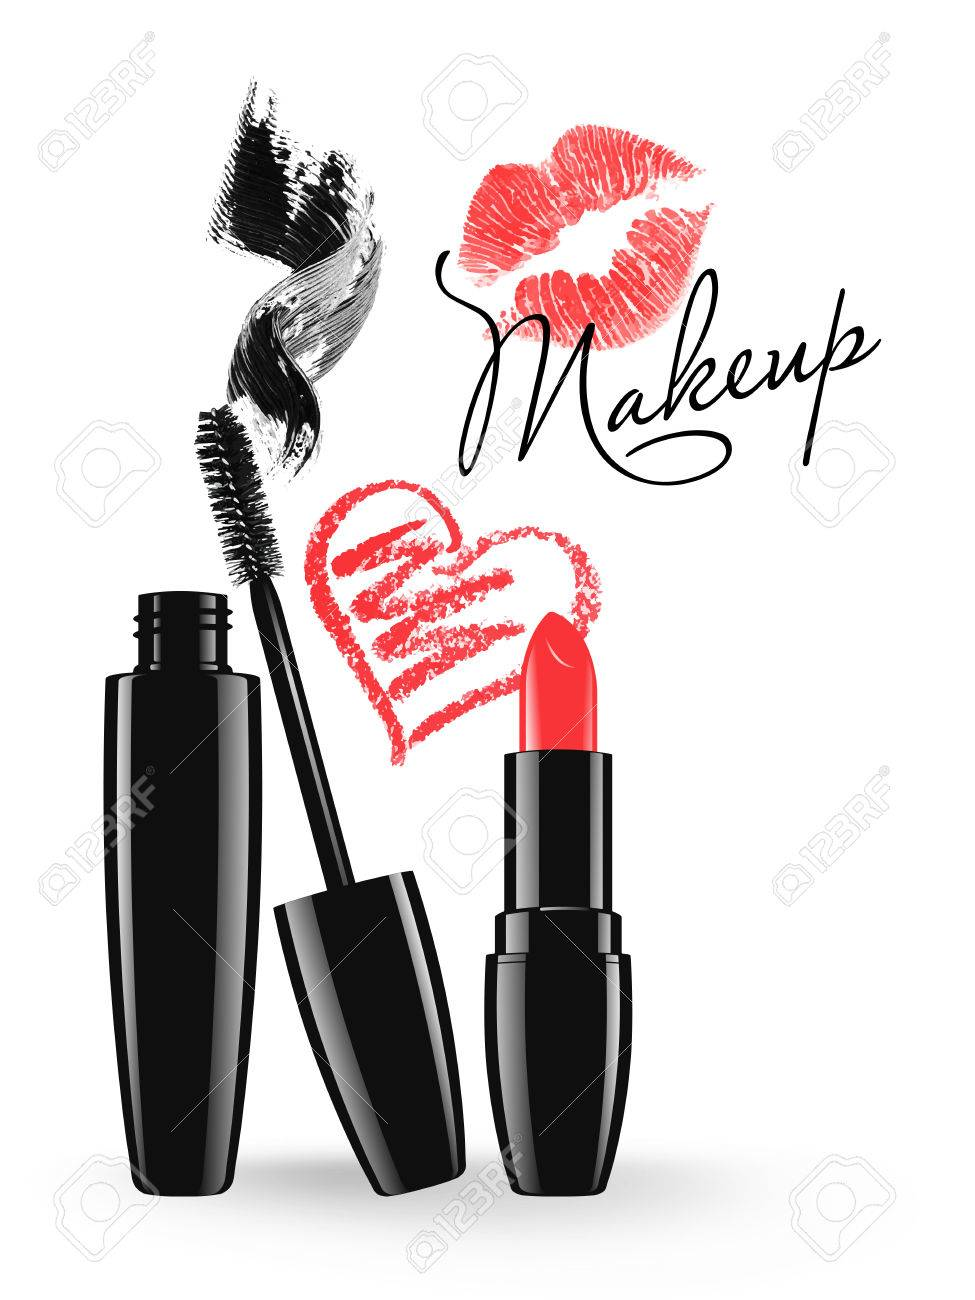 8d092c810c7 Cosmetic product design vector illustration. Makeup mascara tube, brush and  stain, red lipstick